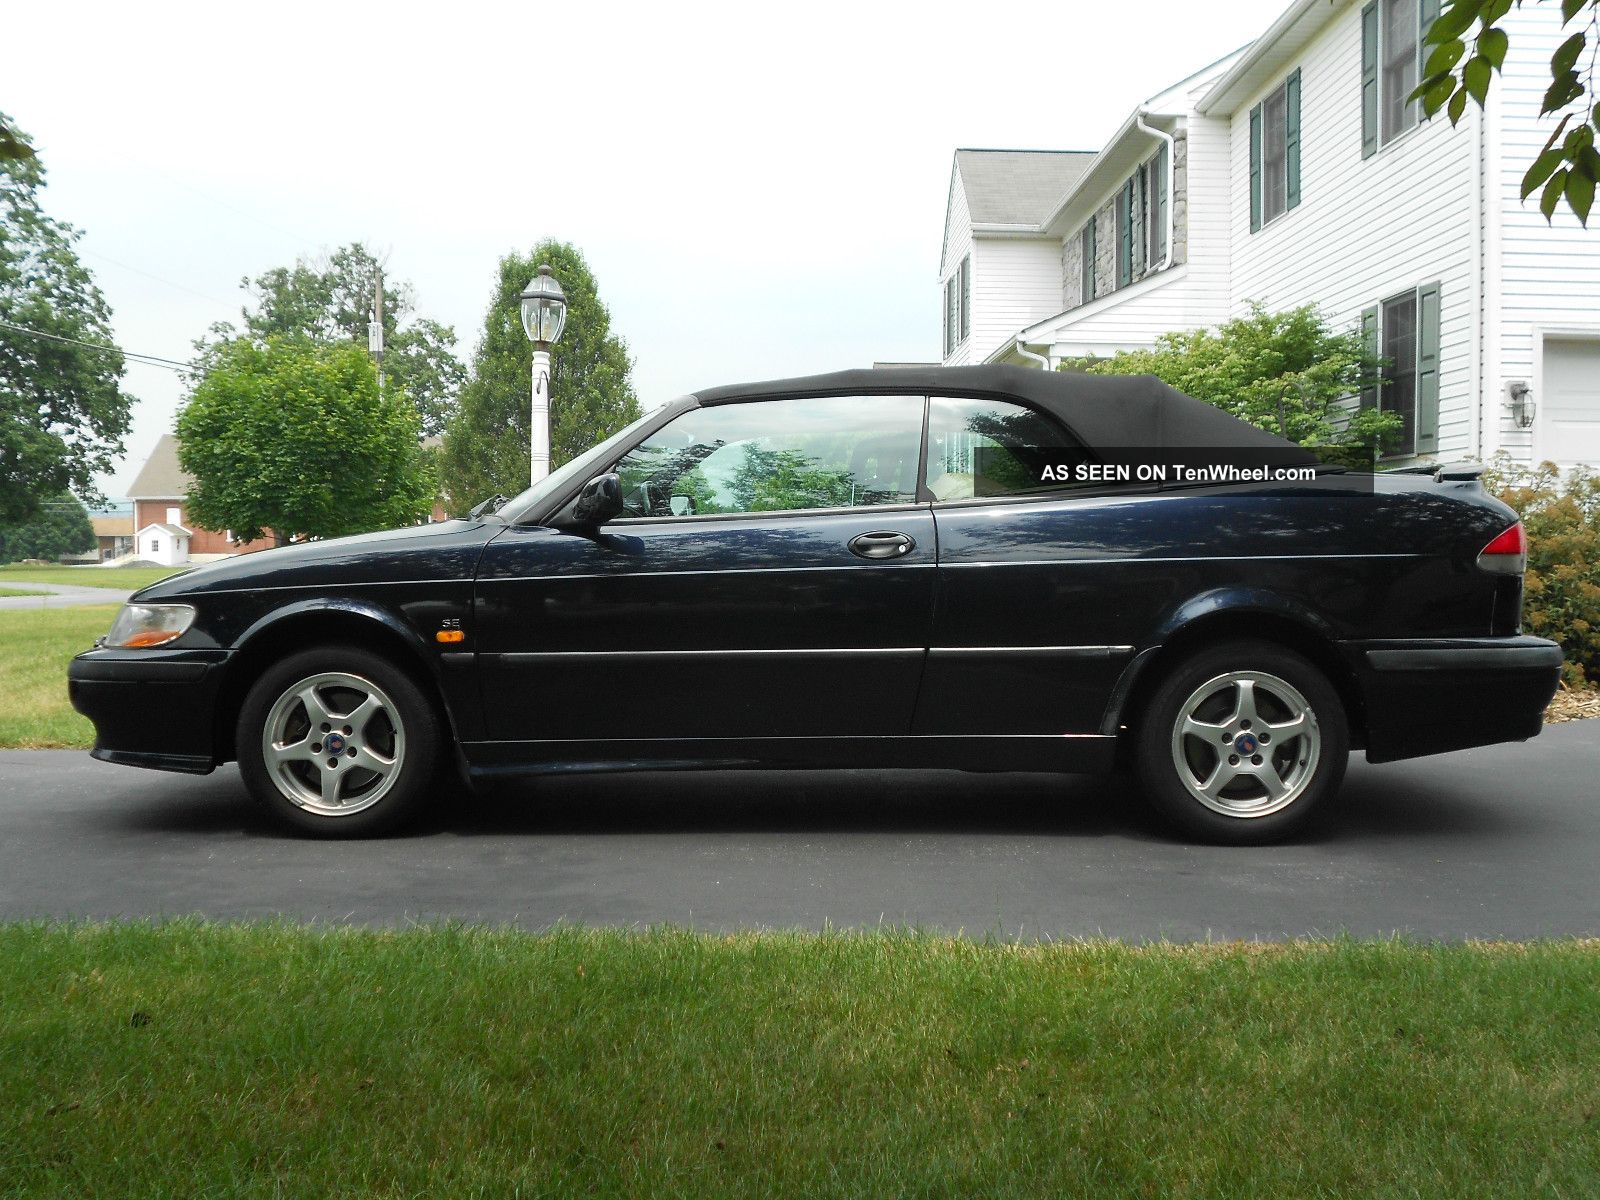 2000 Saab 93 Se Turbo Convertible 9-3 photo